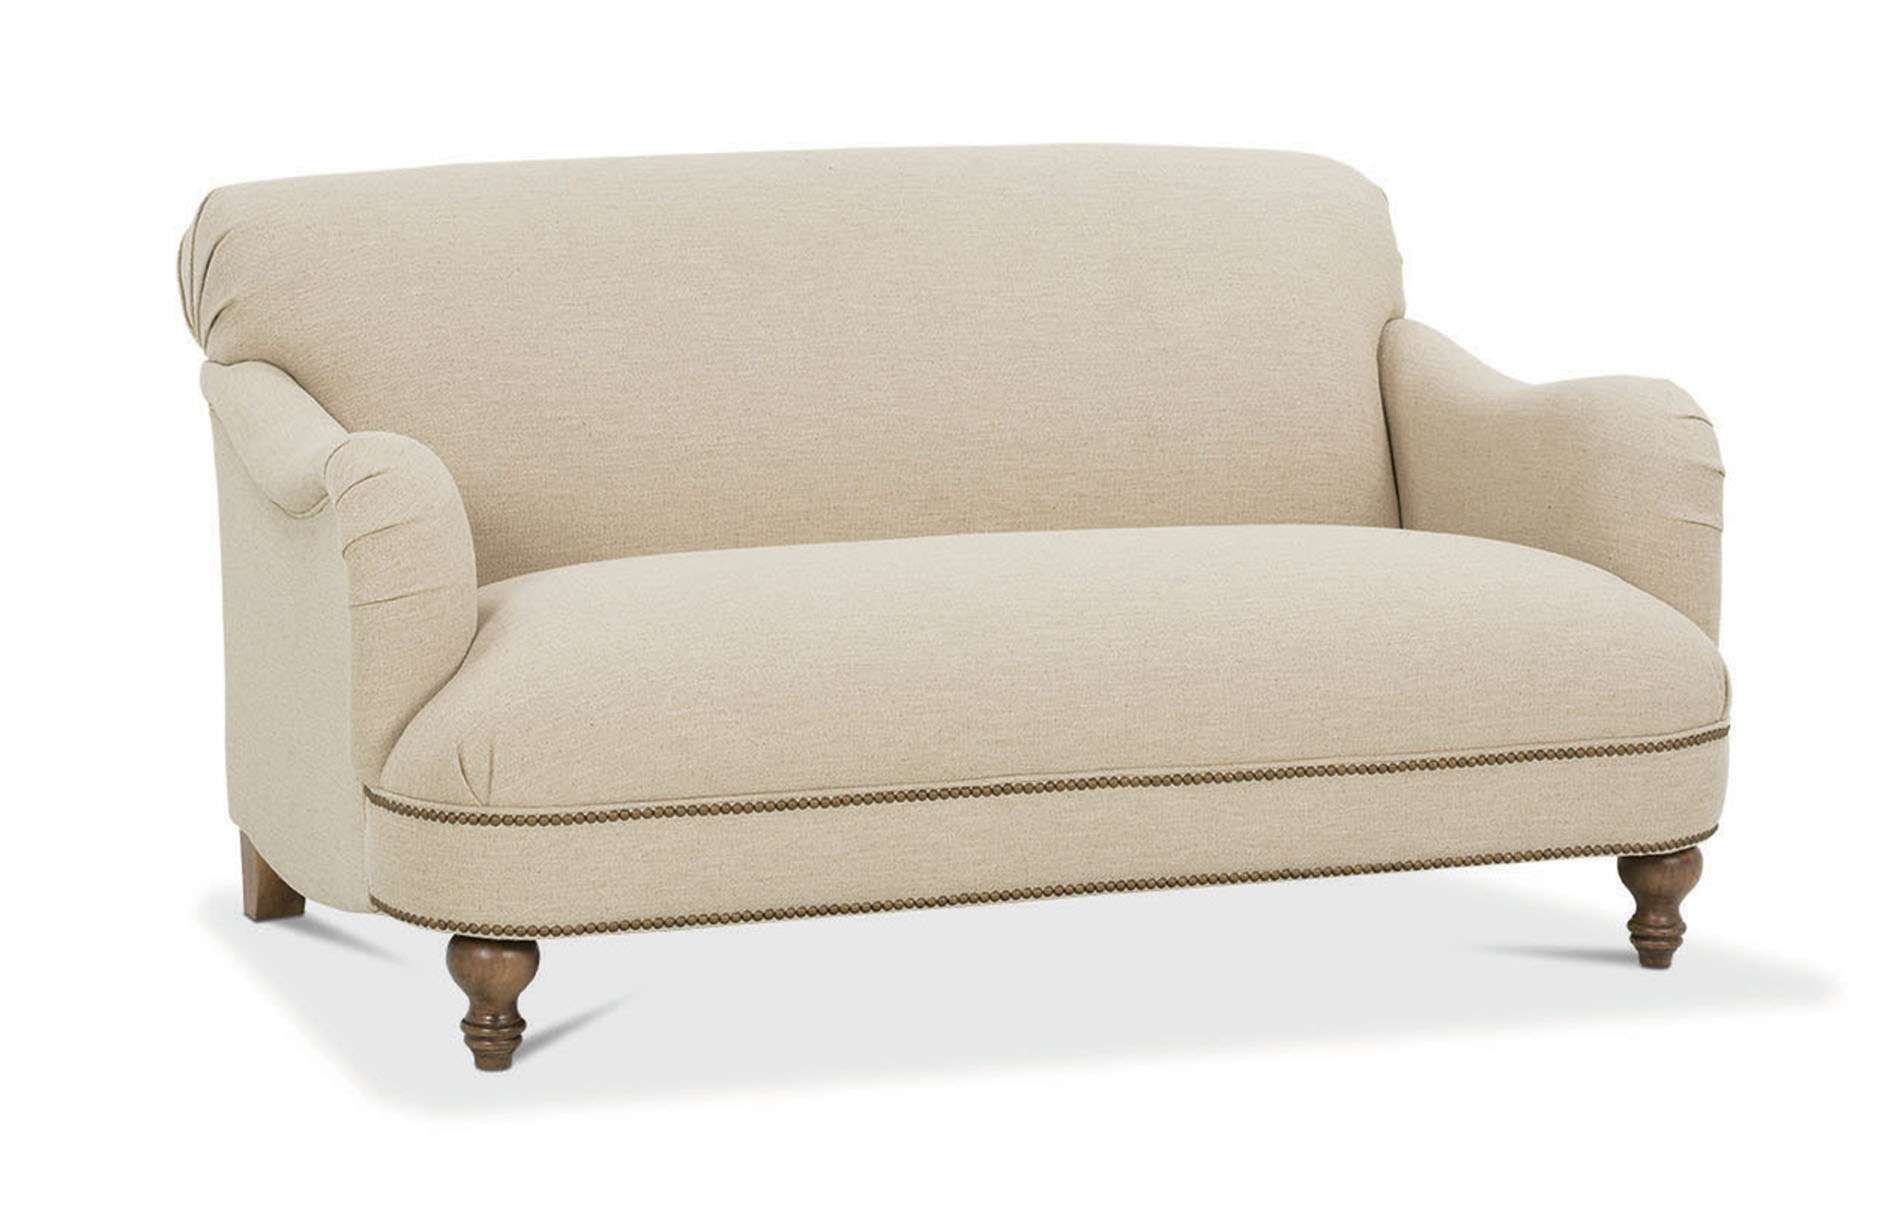 London Settee | Robin Bruce | Robin Bruce Furniture